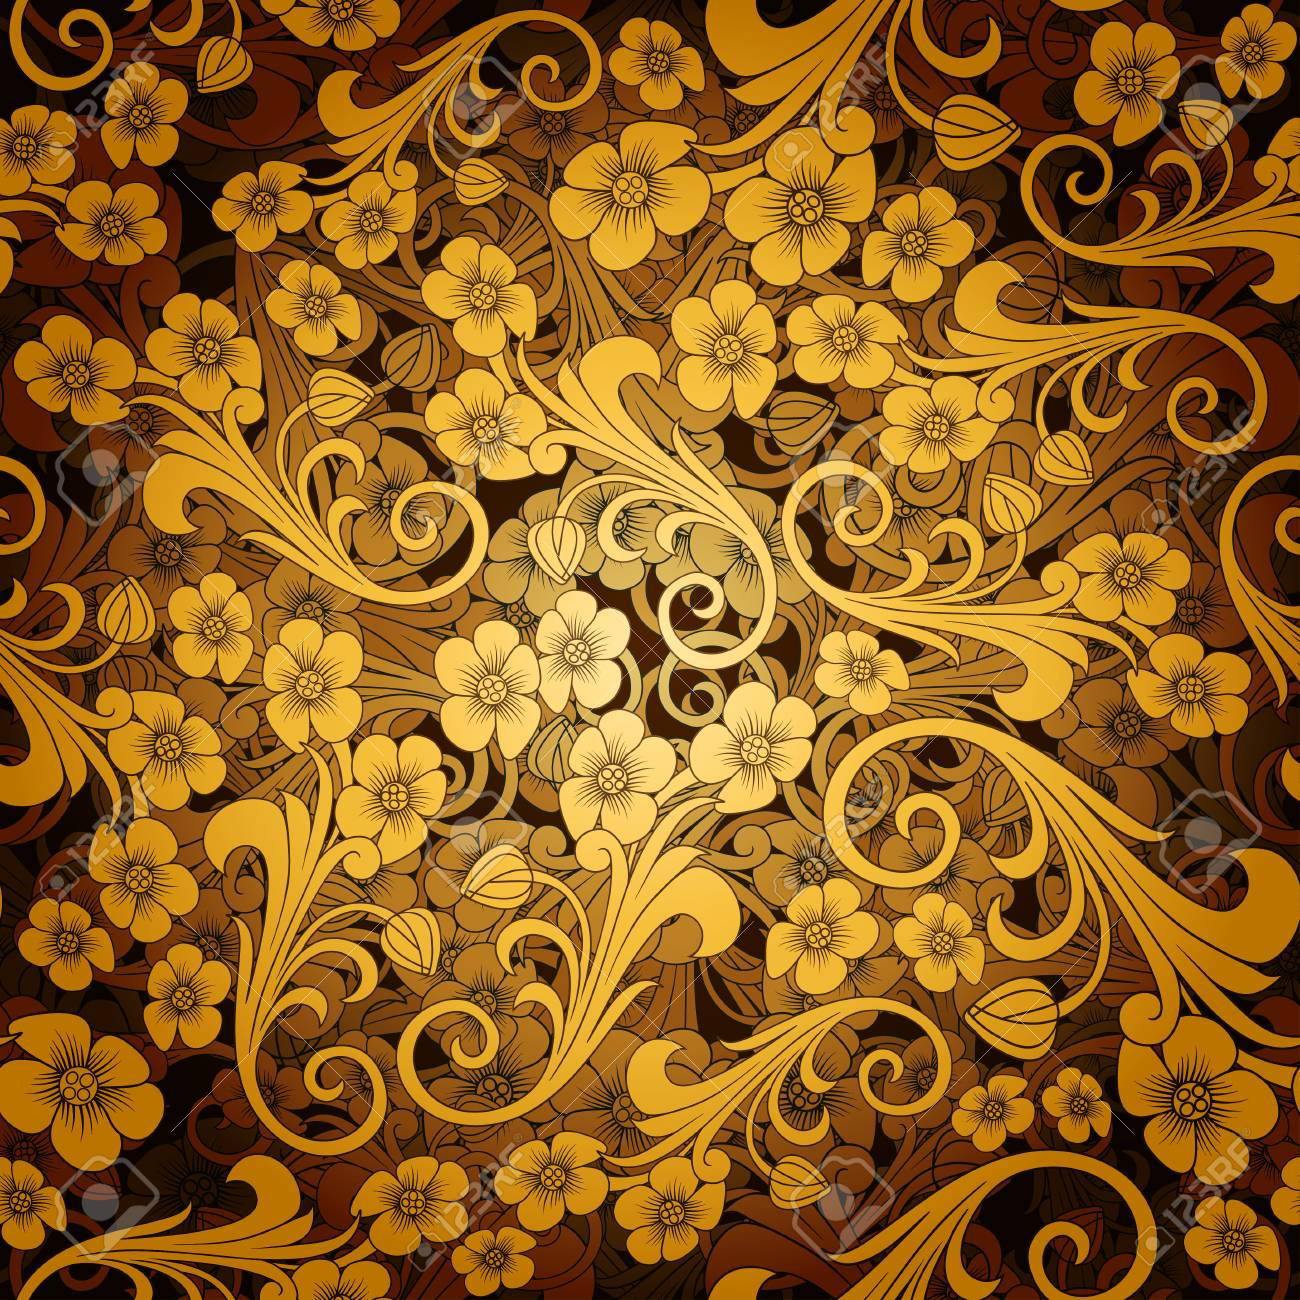 Orient Or Russia Design Luxury Ornamentation Wallpaper Floral 1300x1300